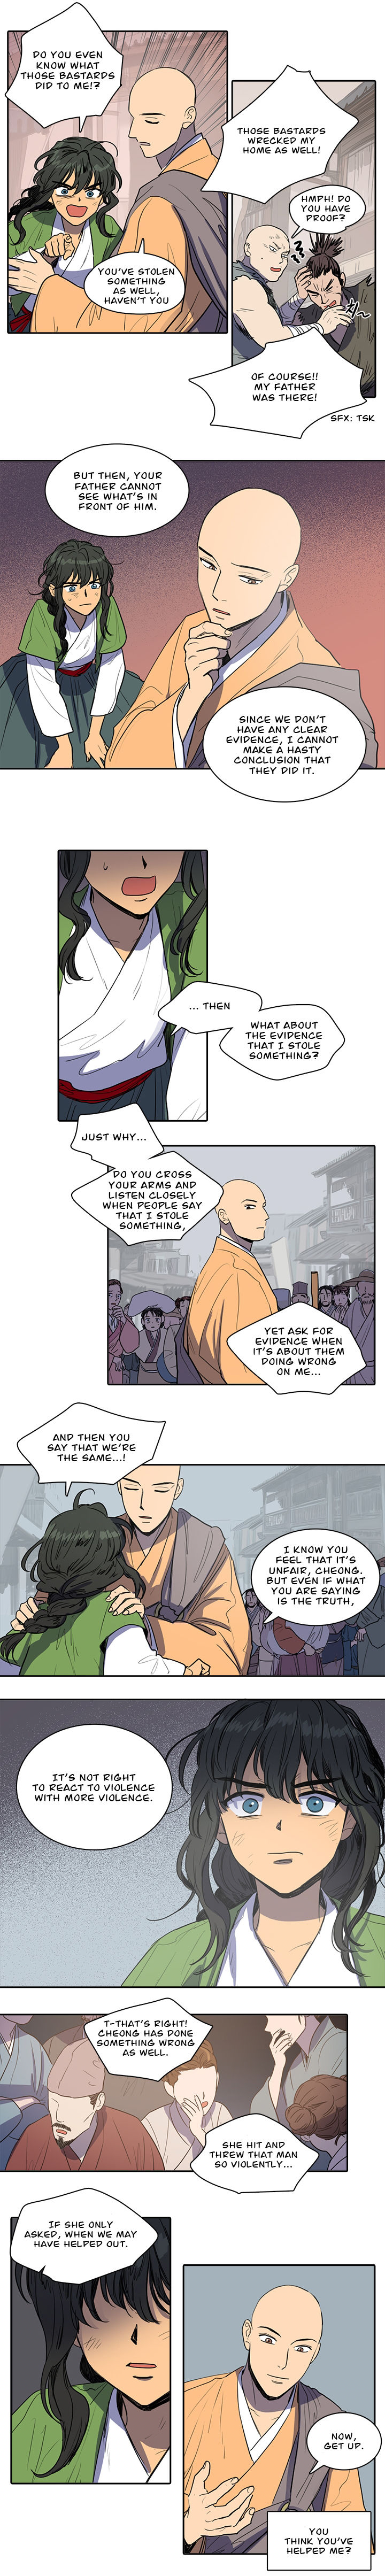 Her Shim Cheong 36 Page 2